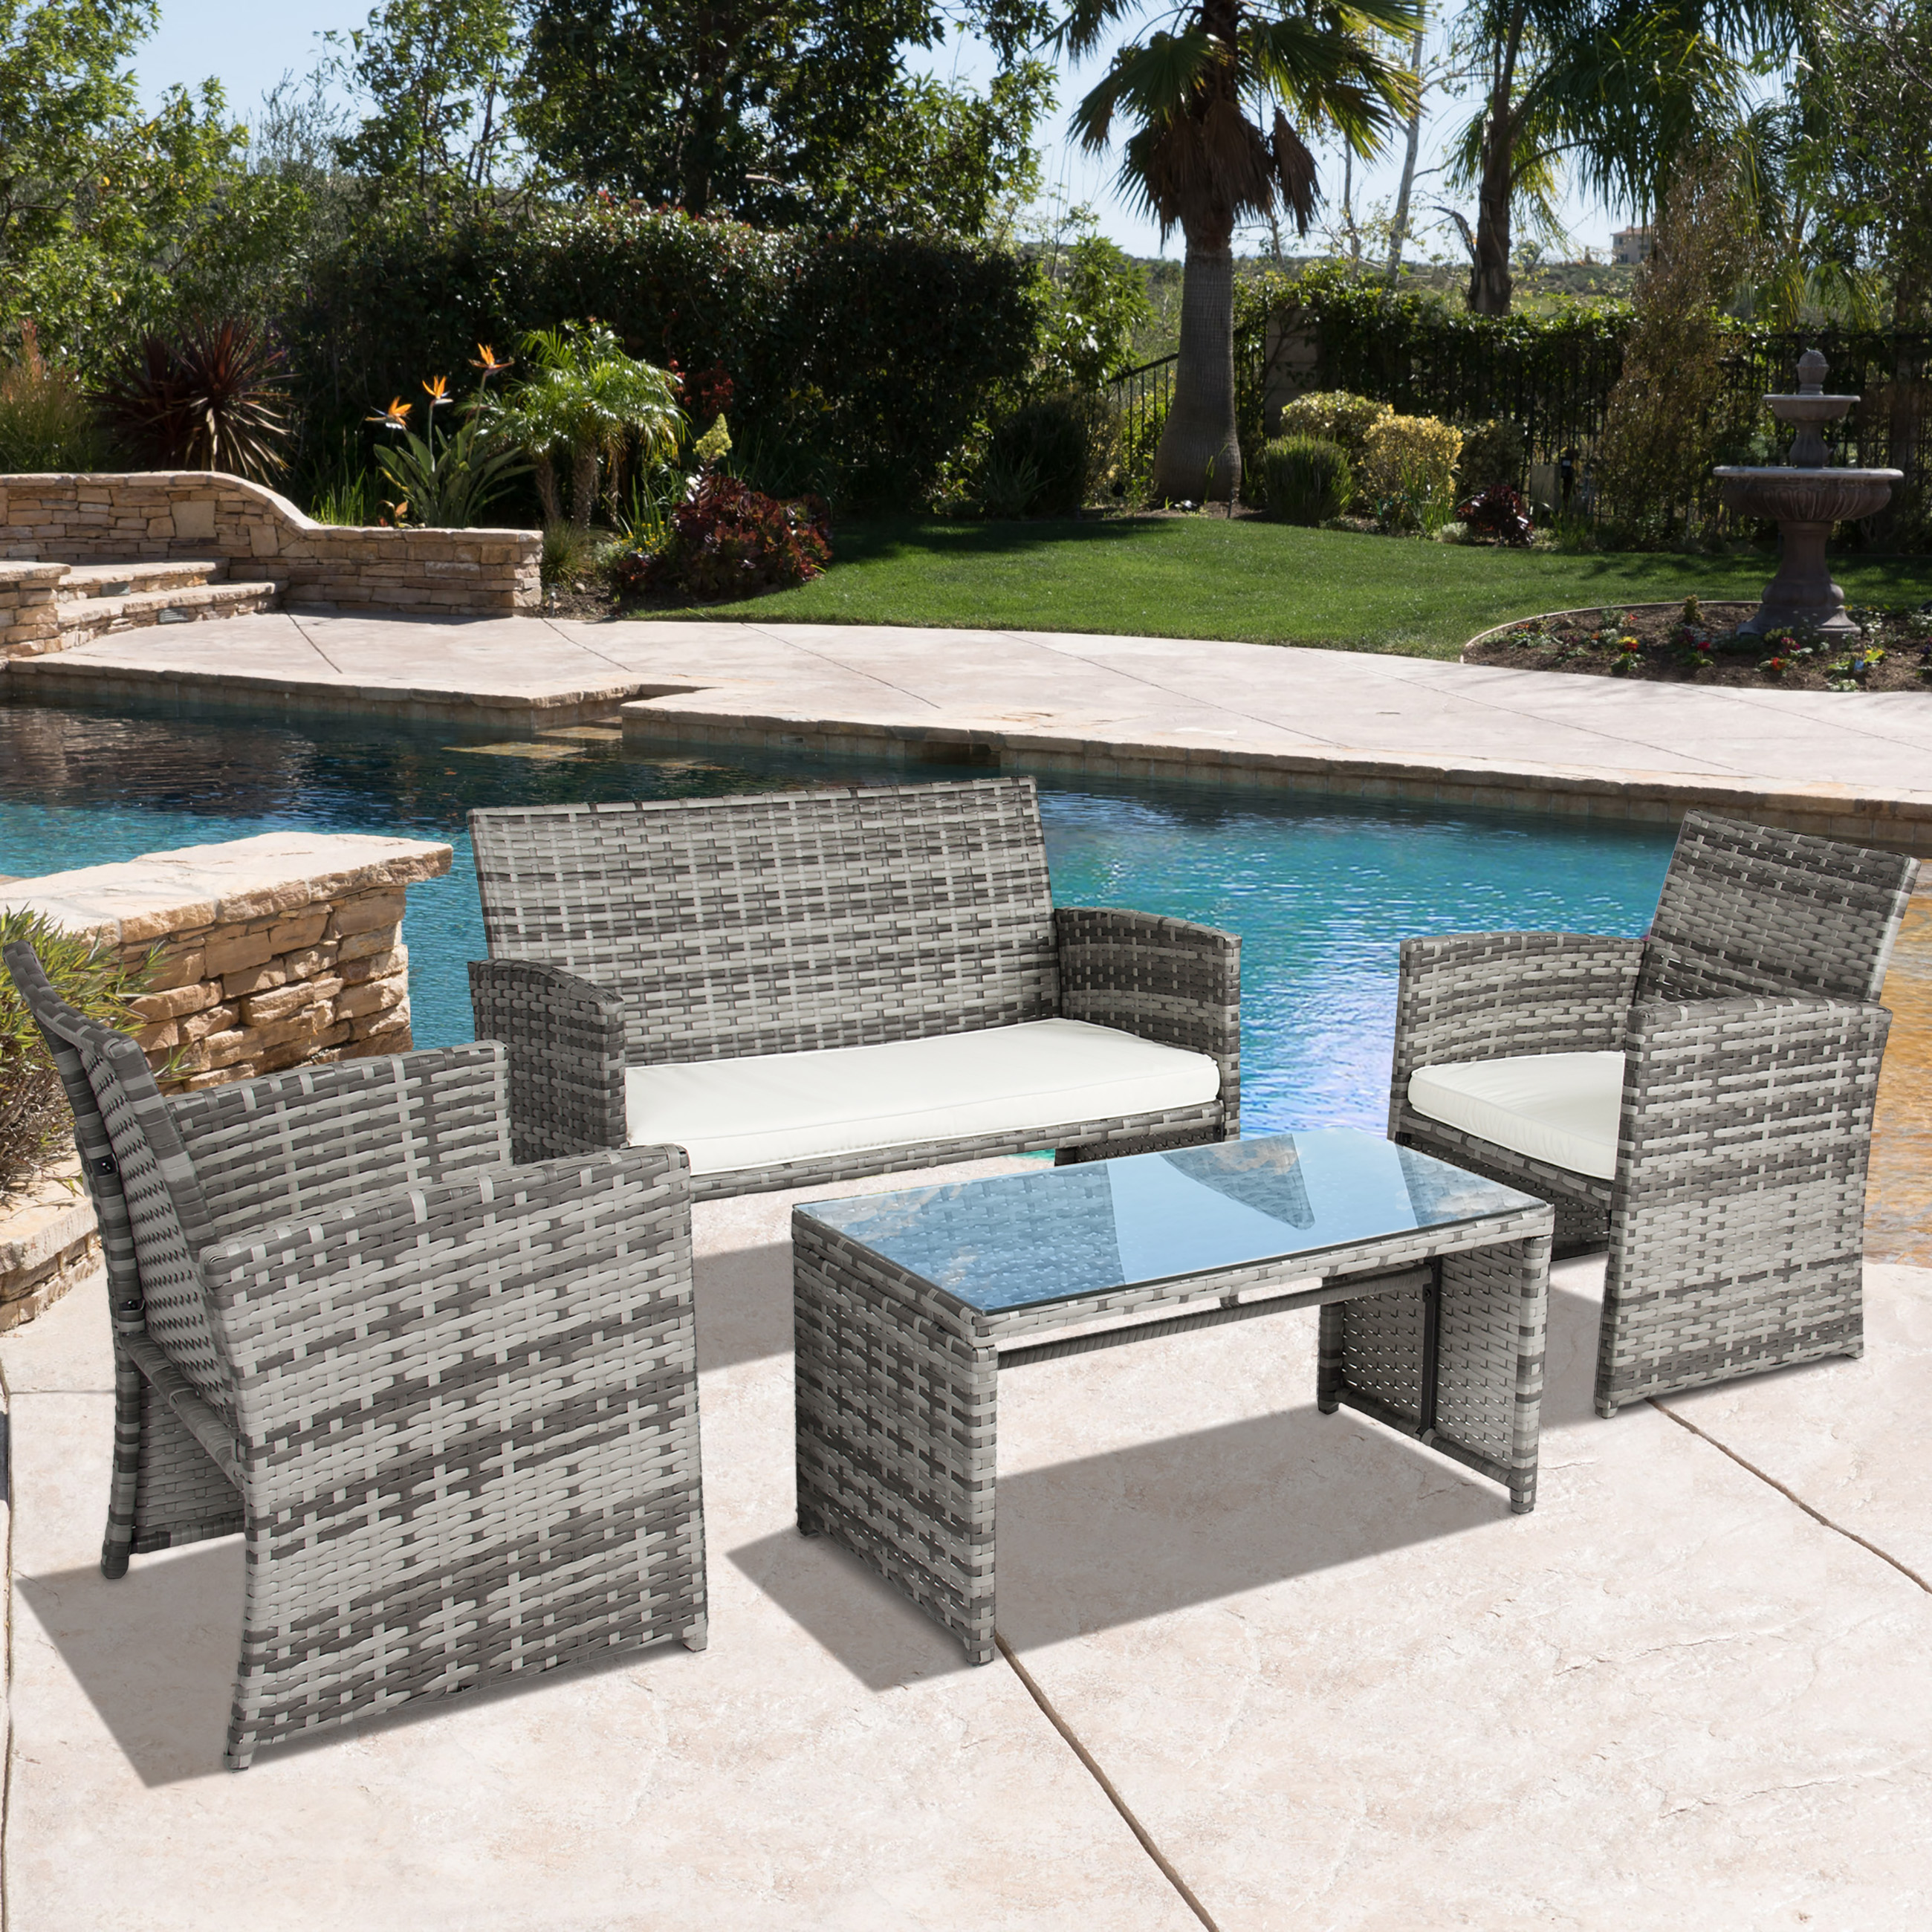 Best Choice Products Outdoor Patio Furniture Cushioned 4 Piece Wicker Sofa Coversation Set- Gray by